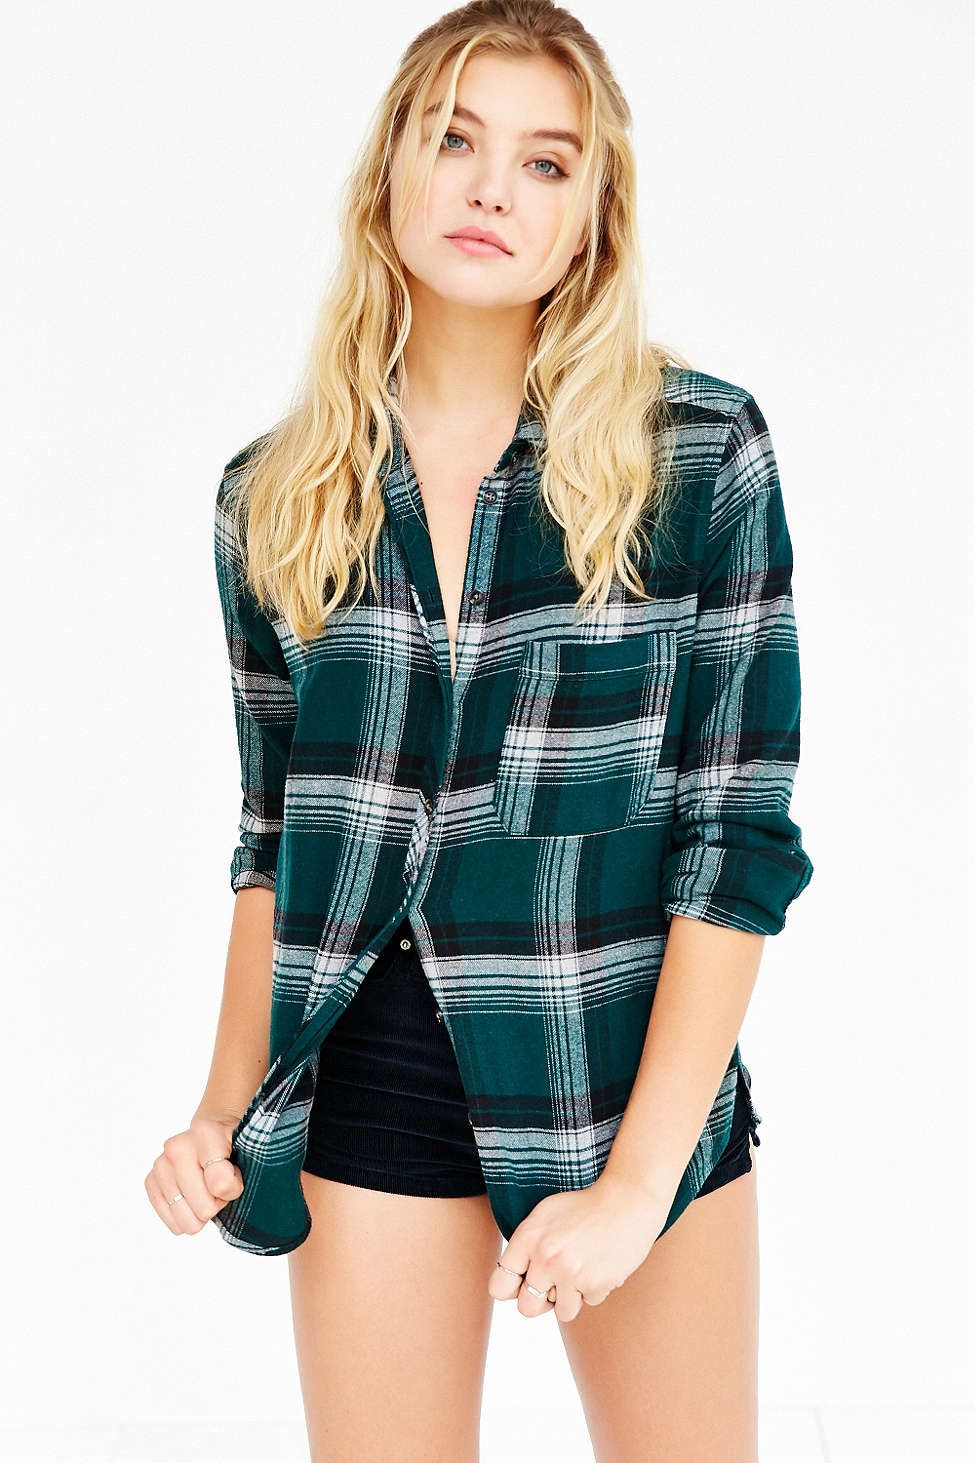 Flannel shirt outfits for women  BDG Olly Flannel Shirt  clothing pieces  Pinterest  Flannel